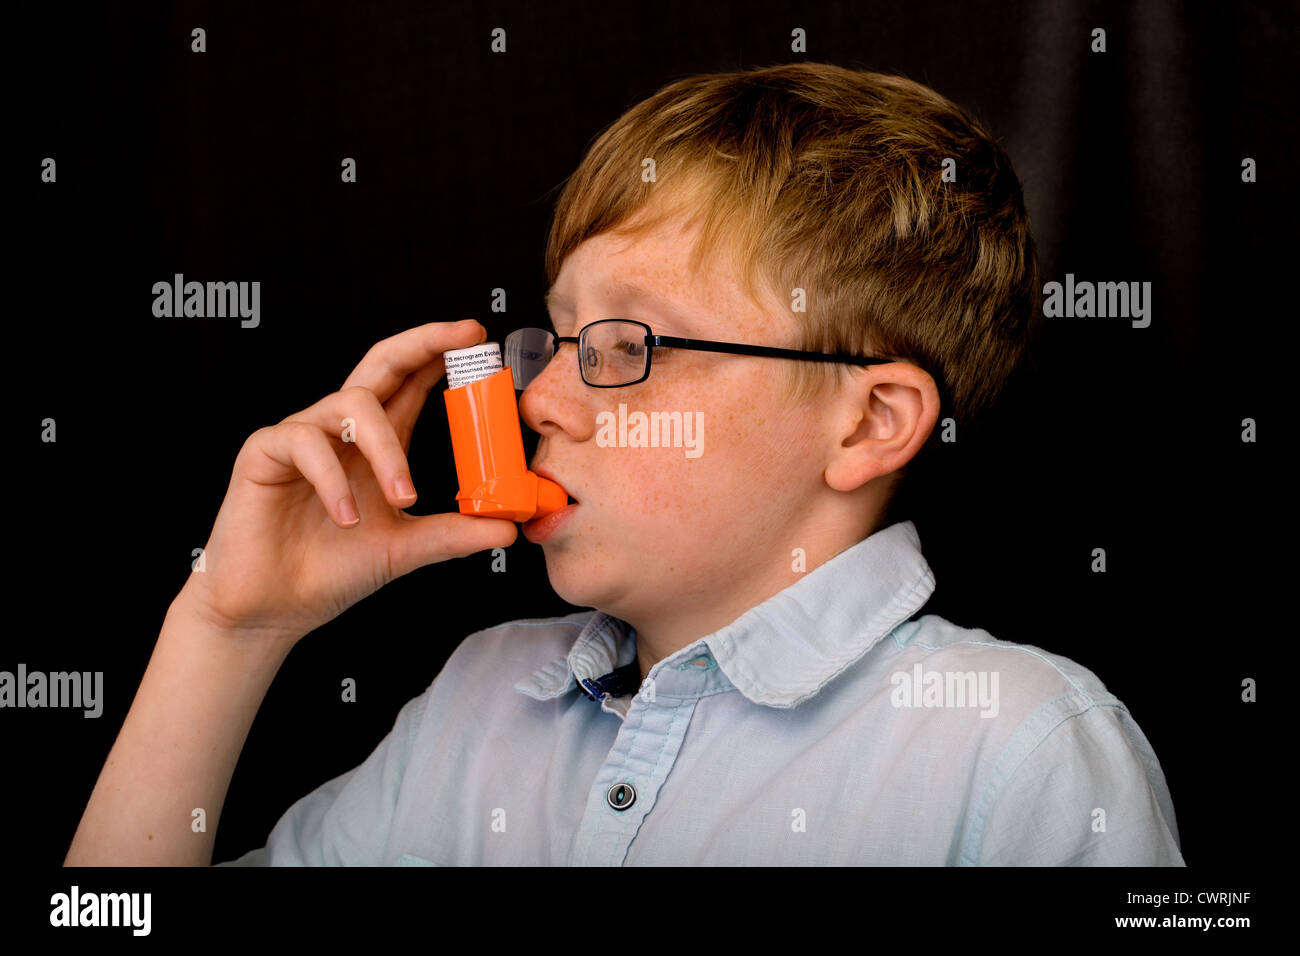 A thirteen year old boy using an asthma pump - Stock Image